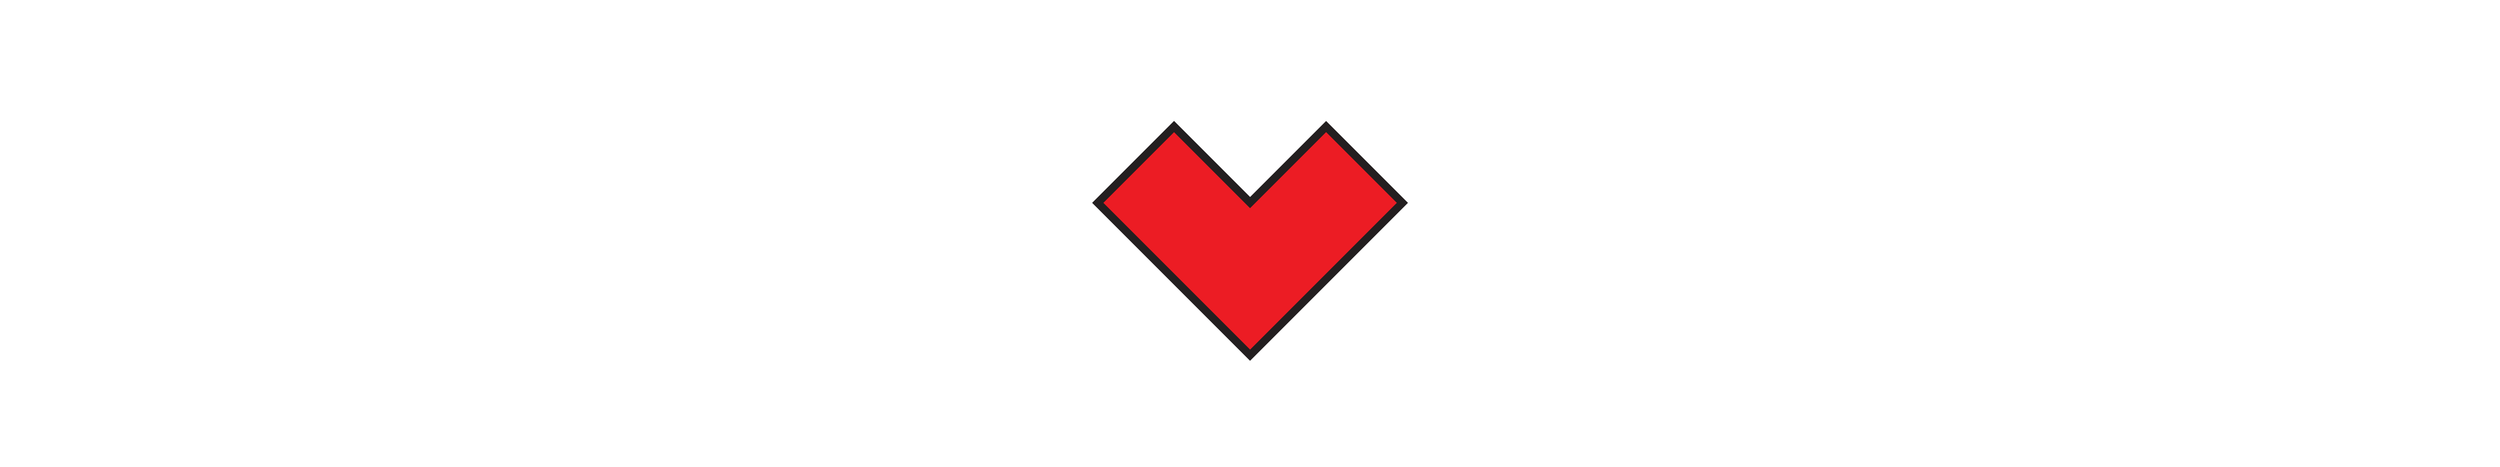 Heart_donate-03.png